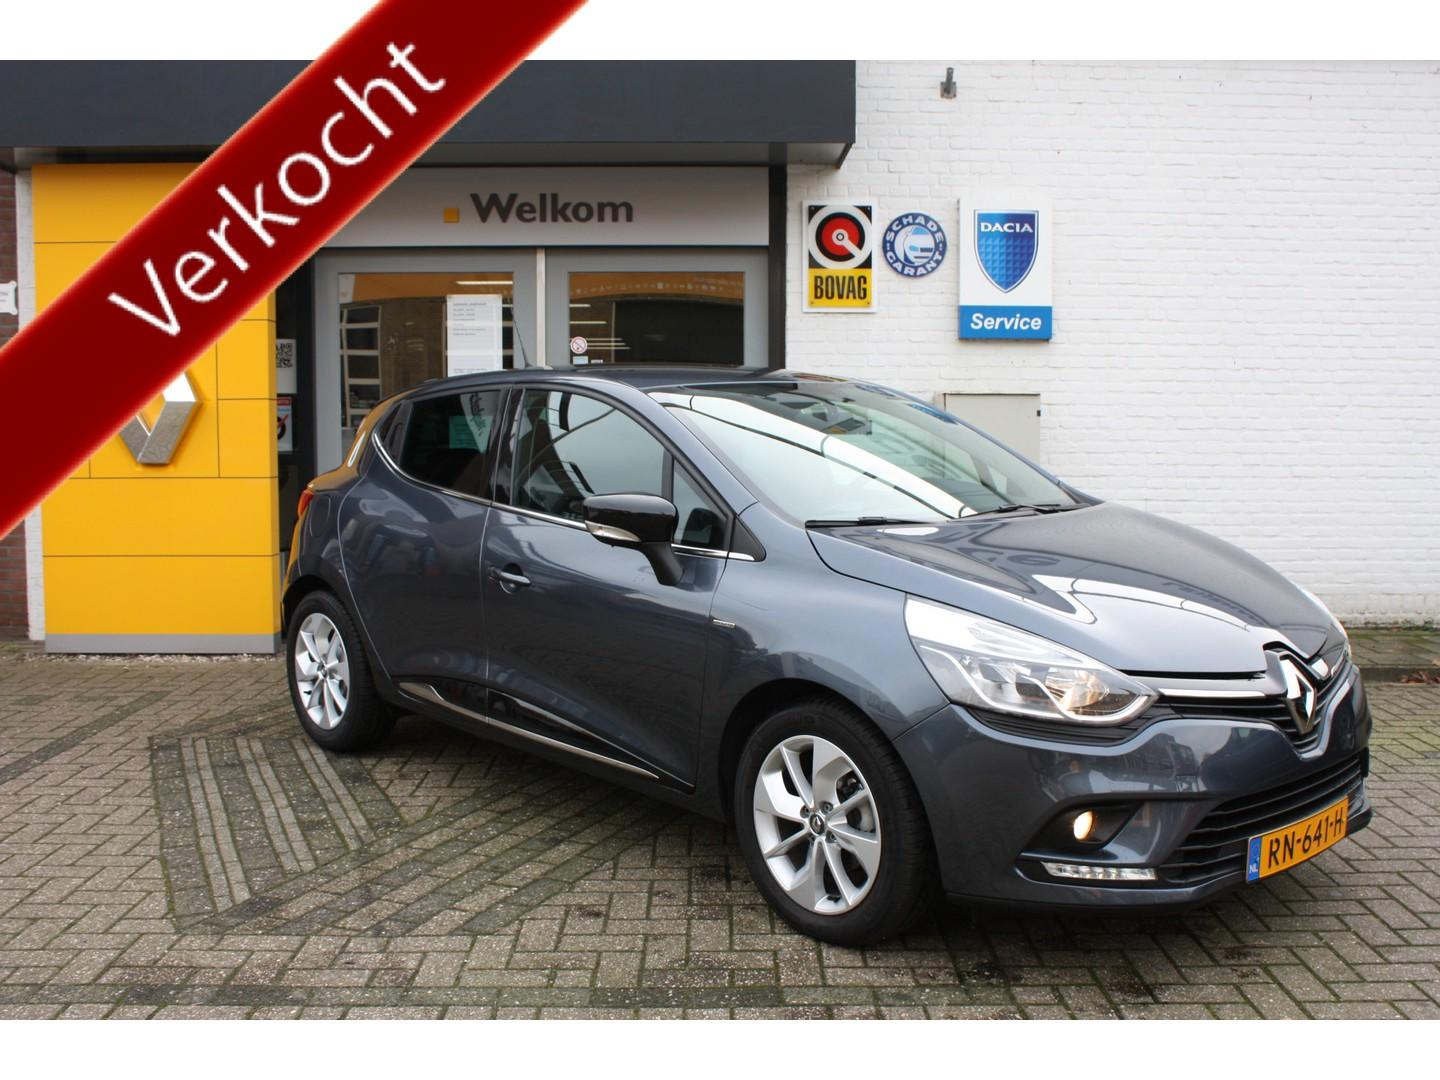 Renault Clio Iv hb tce 90 limited